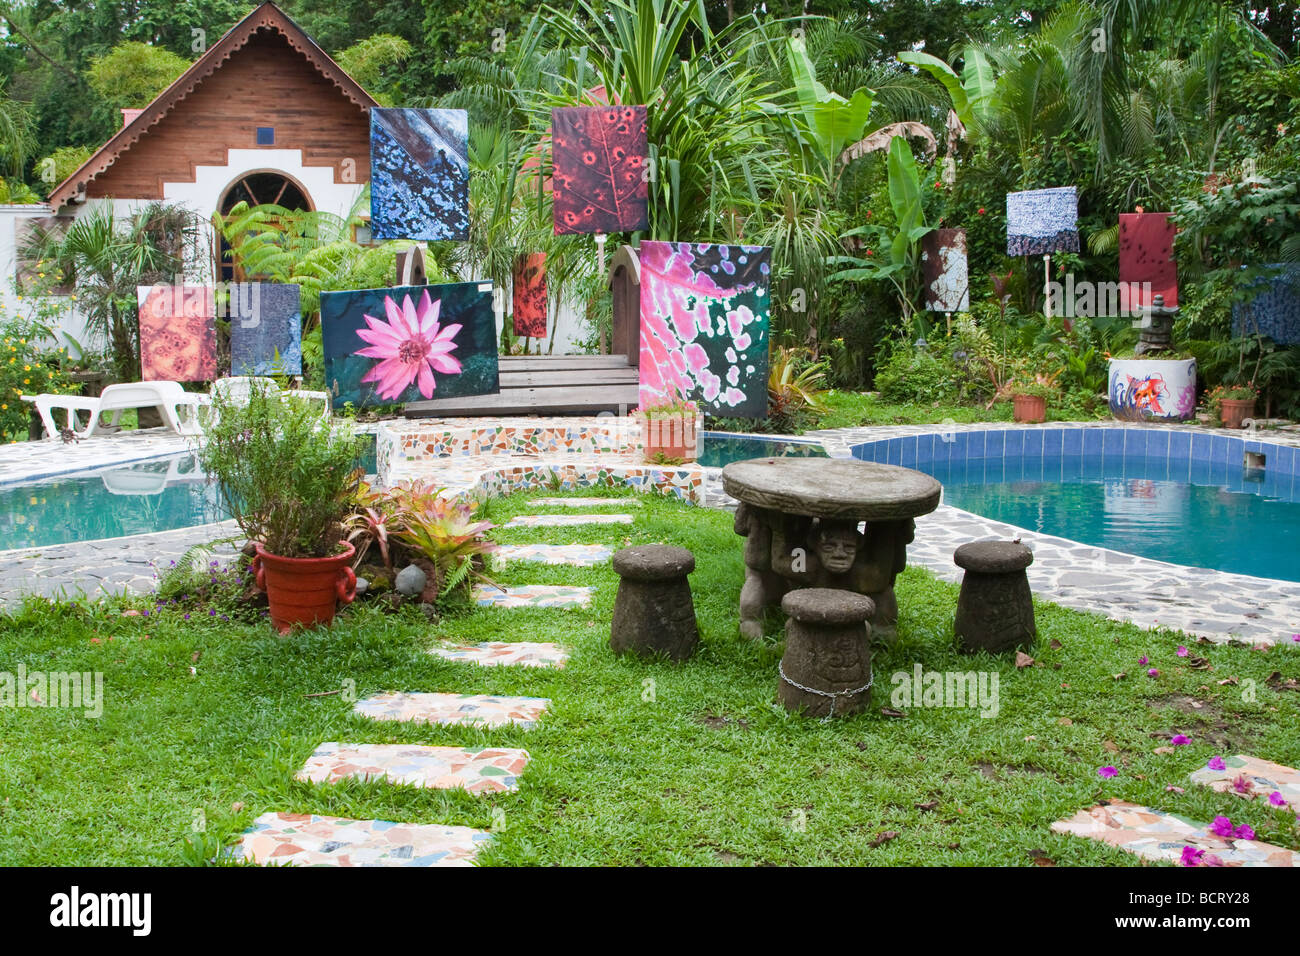 Costa Rica Puerto Viejo jardin tropical avec piscine et swimmong art exhibition Photo Stock